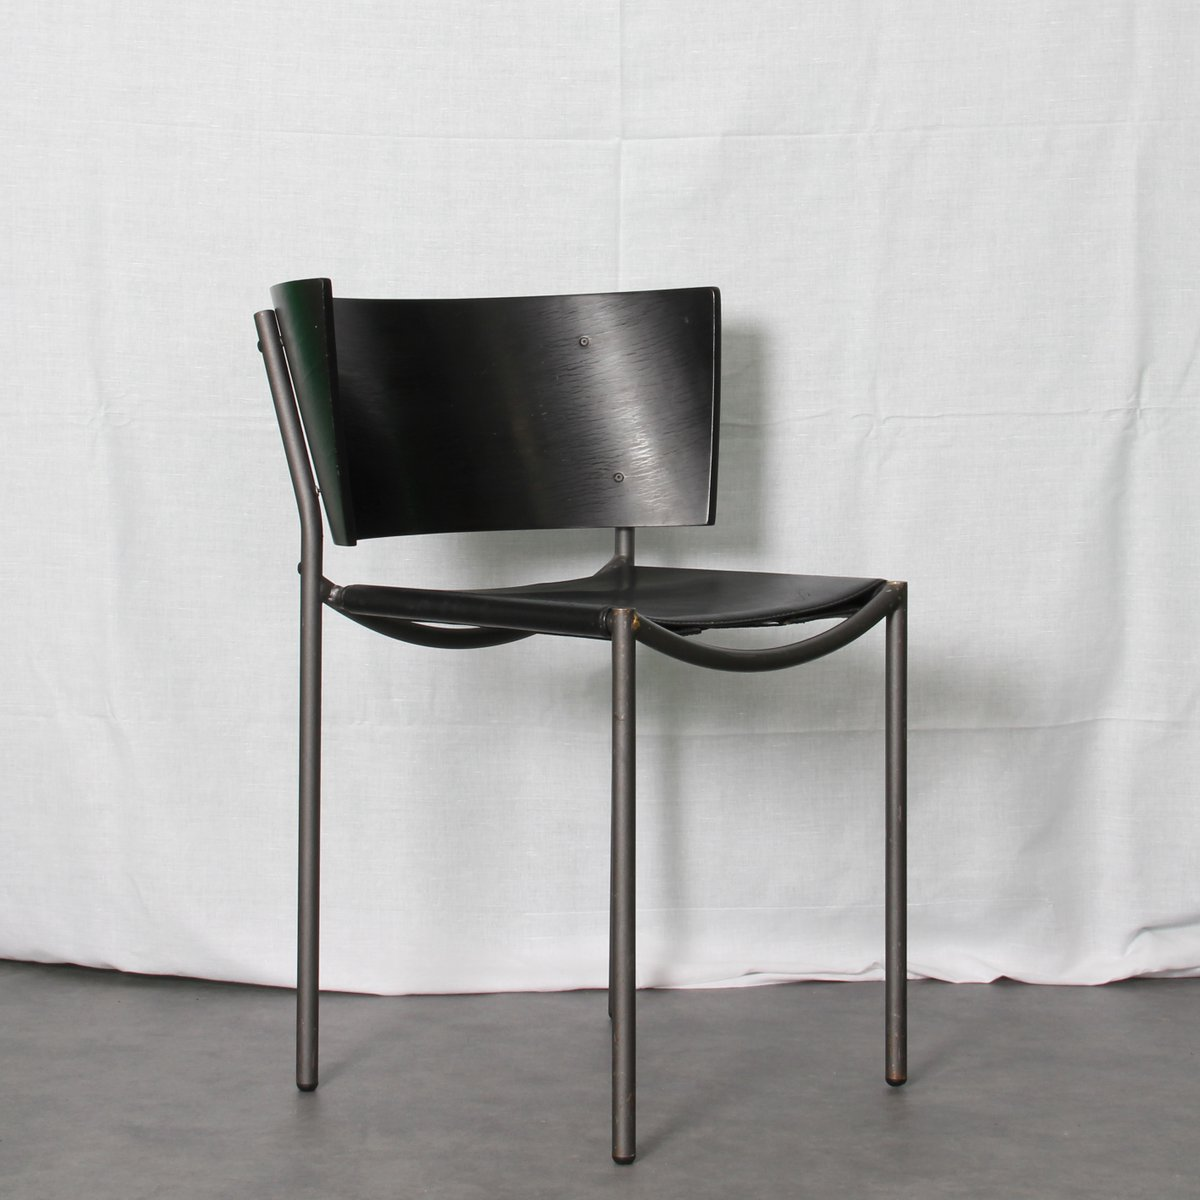 Lilla Hunter Stackable Chairs By Philippe Starck For XO, 1988, Set Of 2